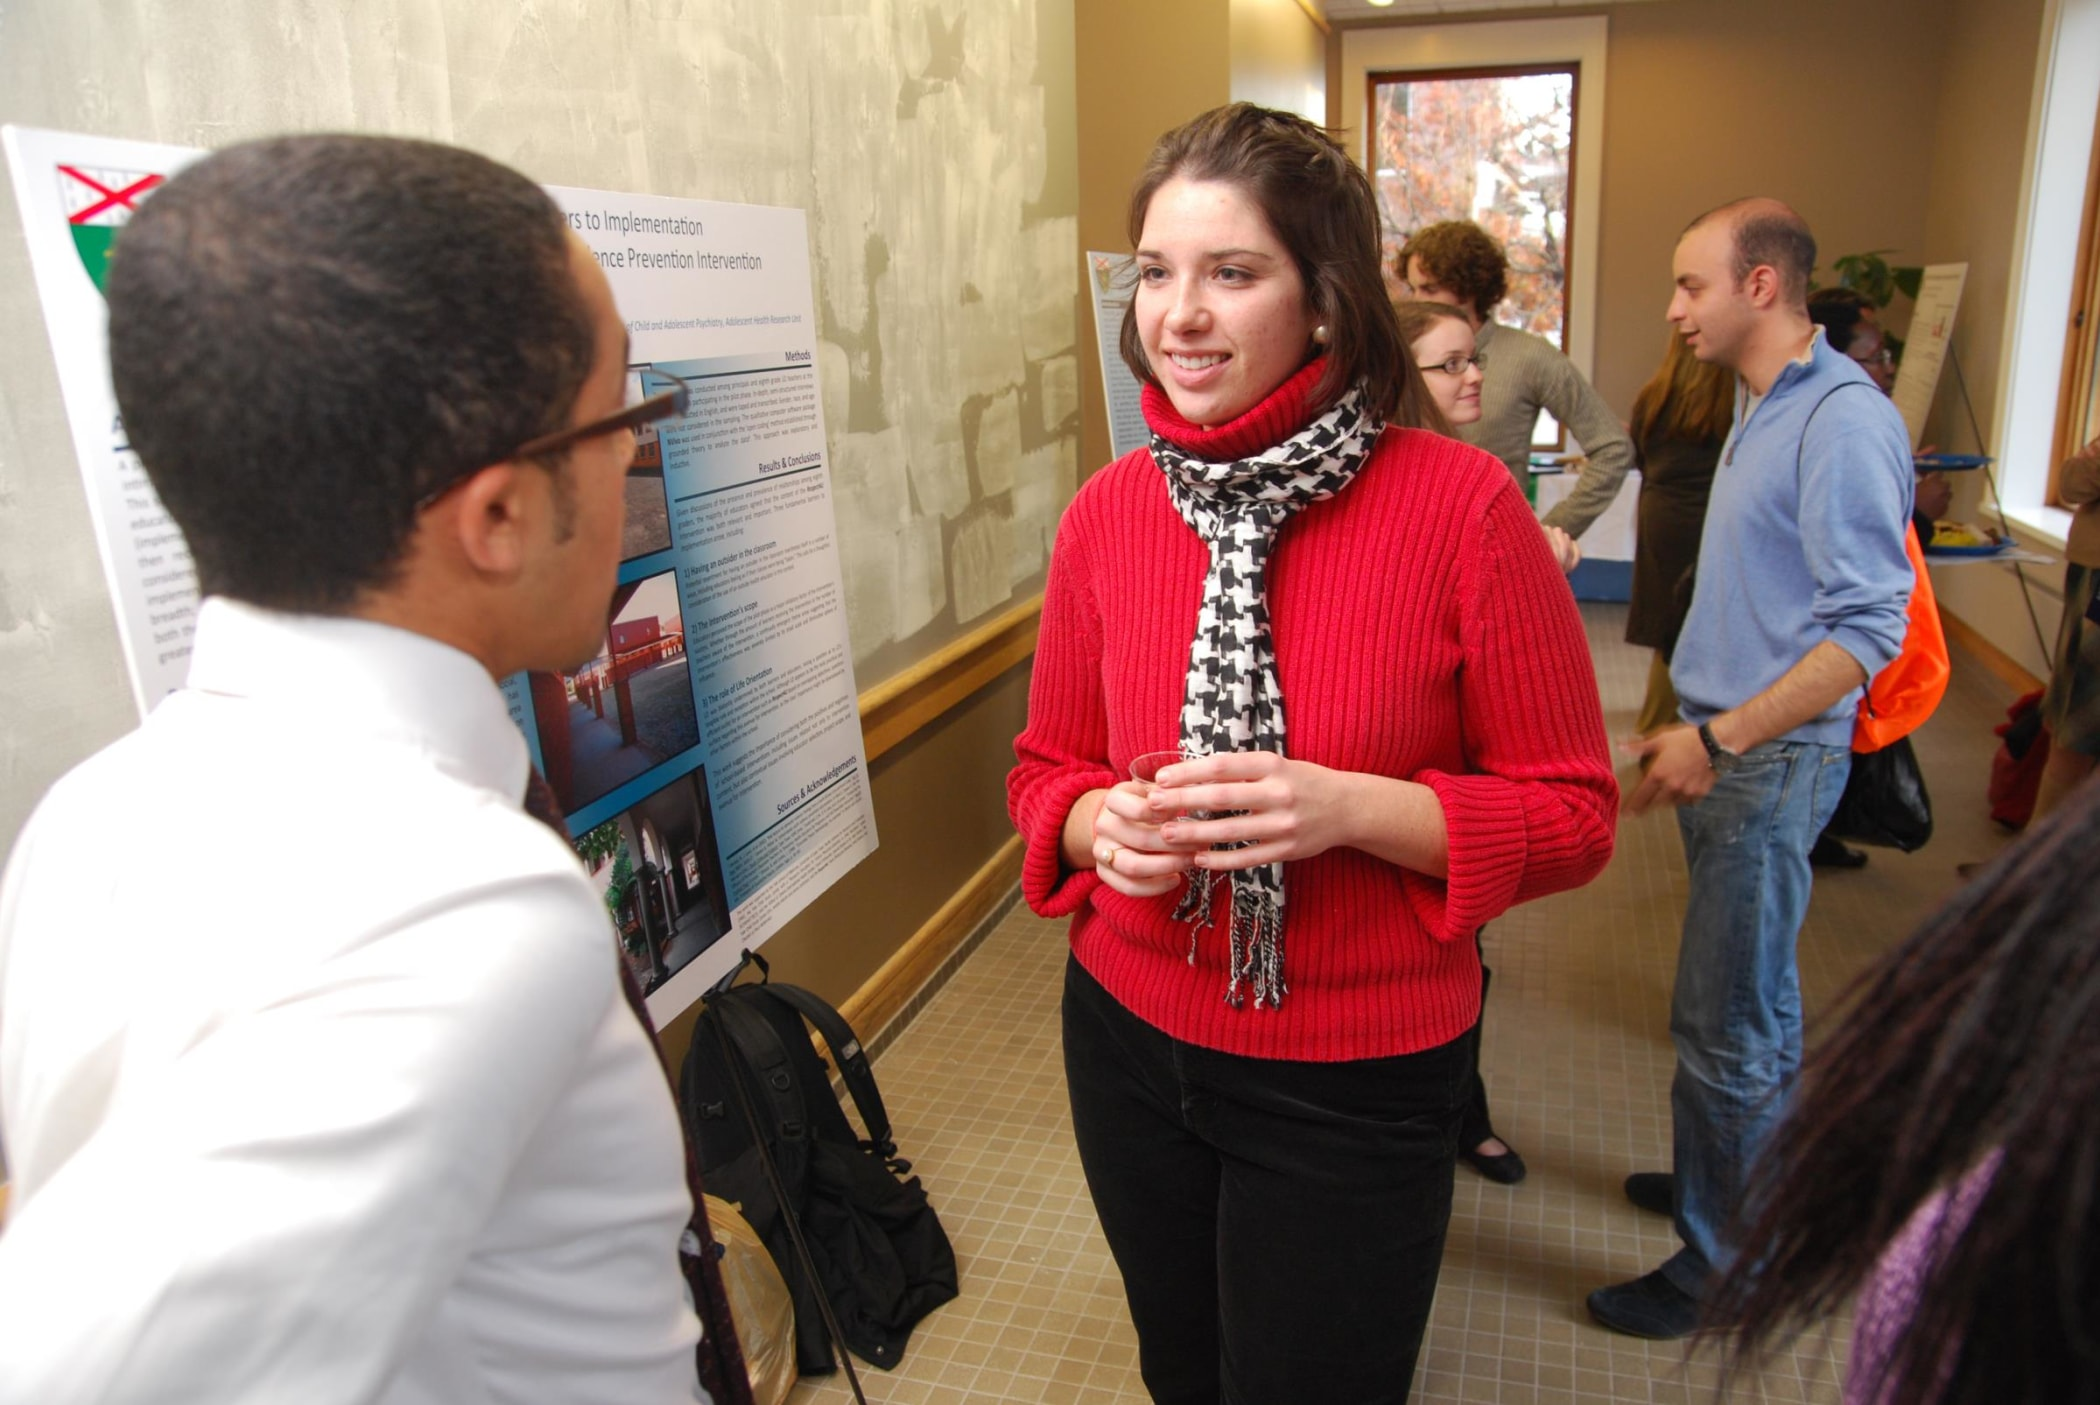 Alexandra Grizas, a public health student, attended the poster session in October.